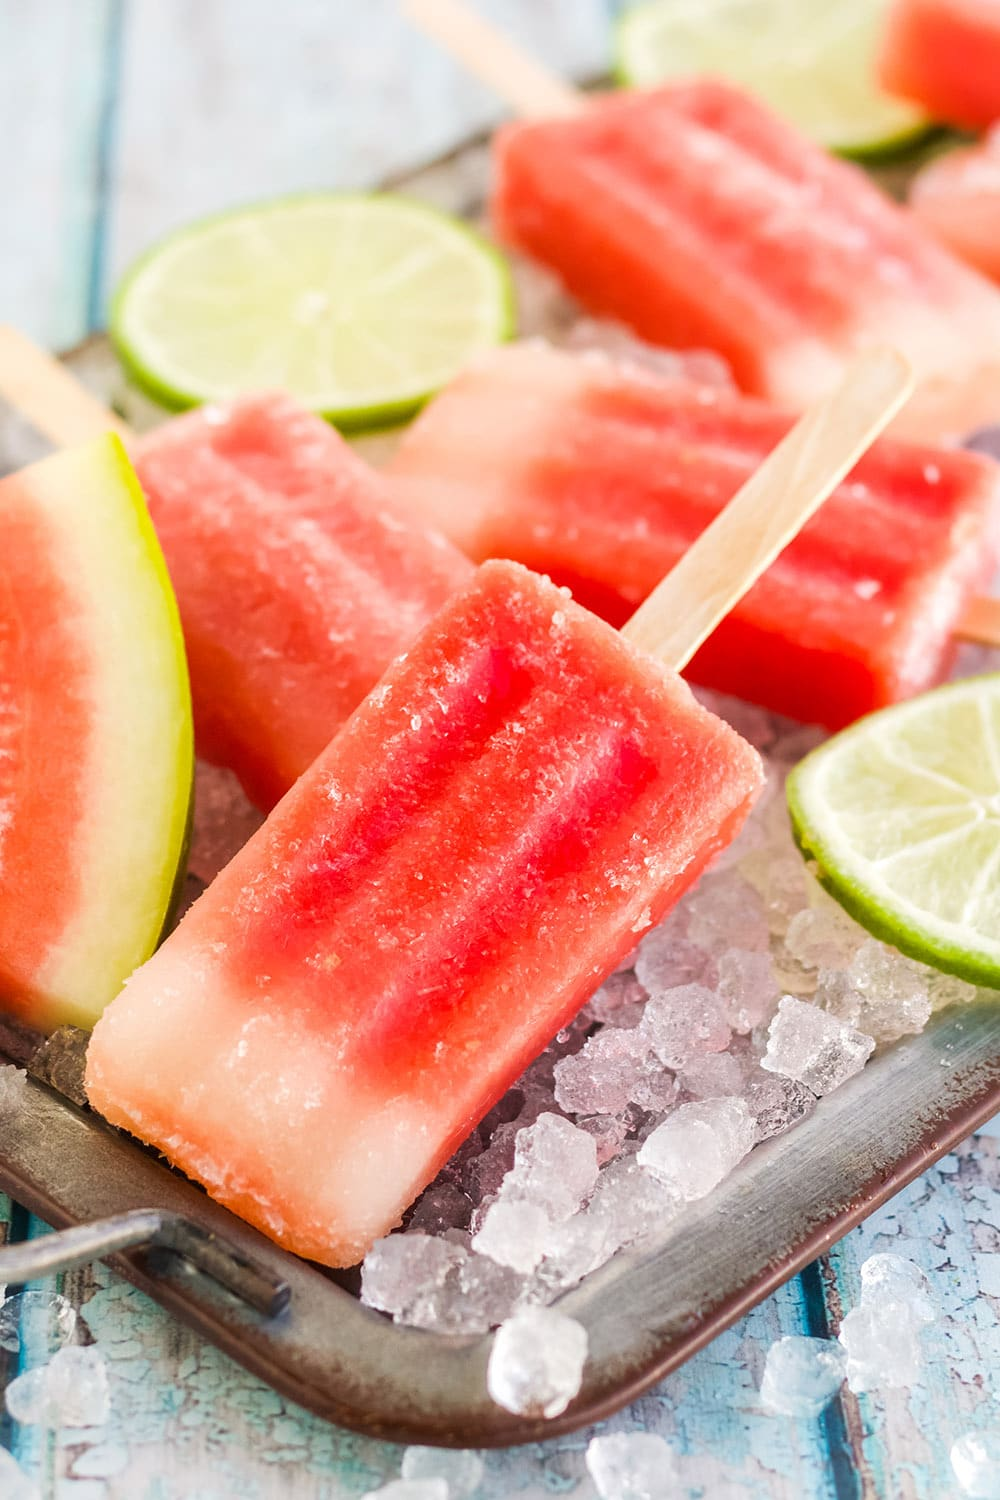 Red popsicles on a tray with watermelon.